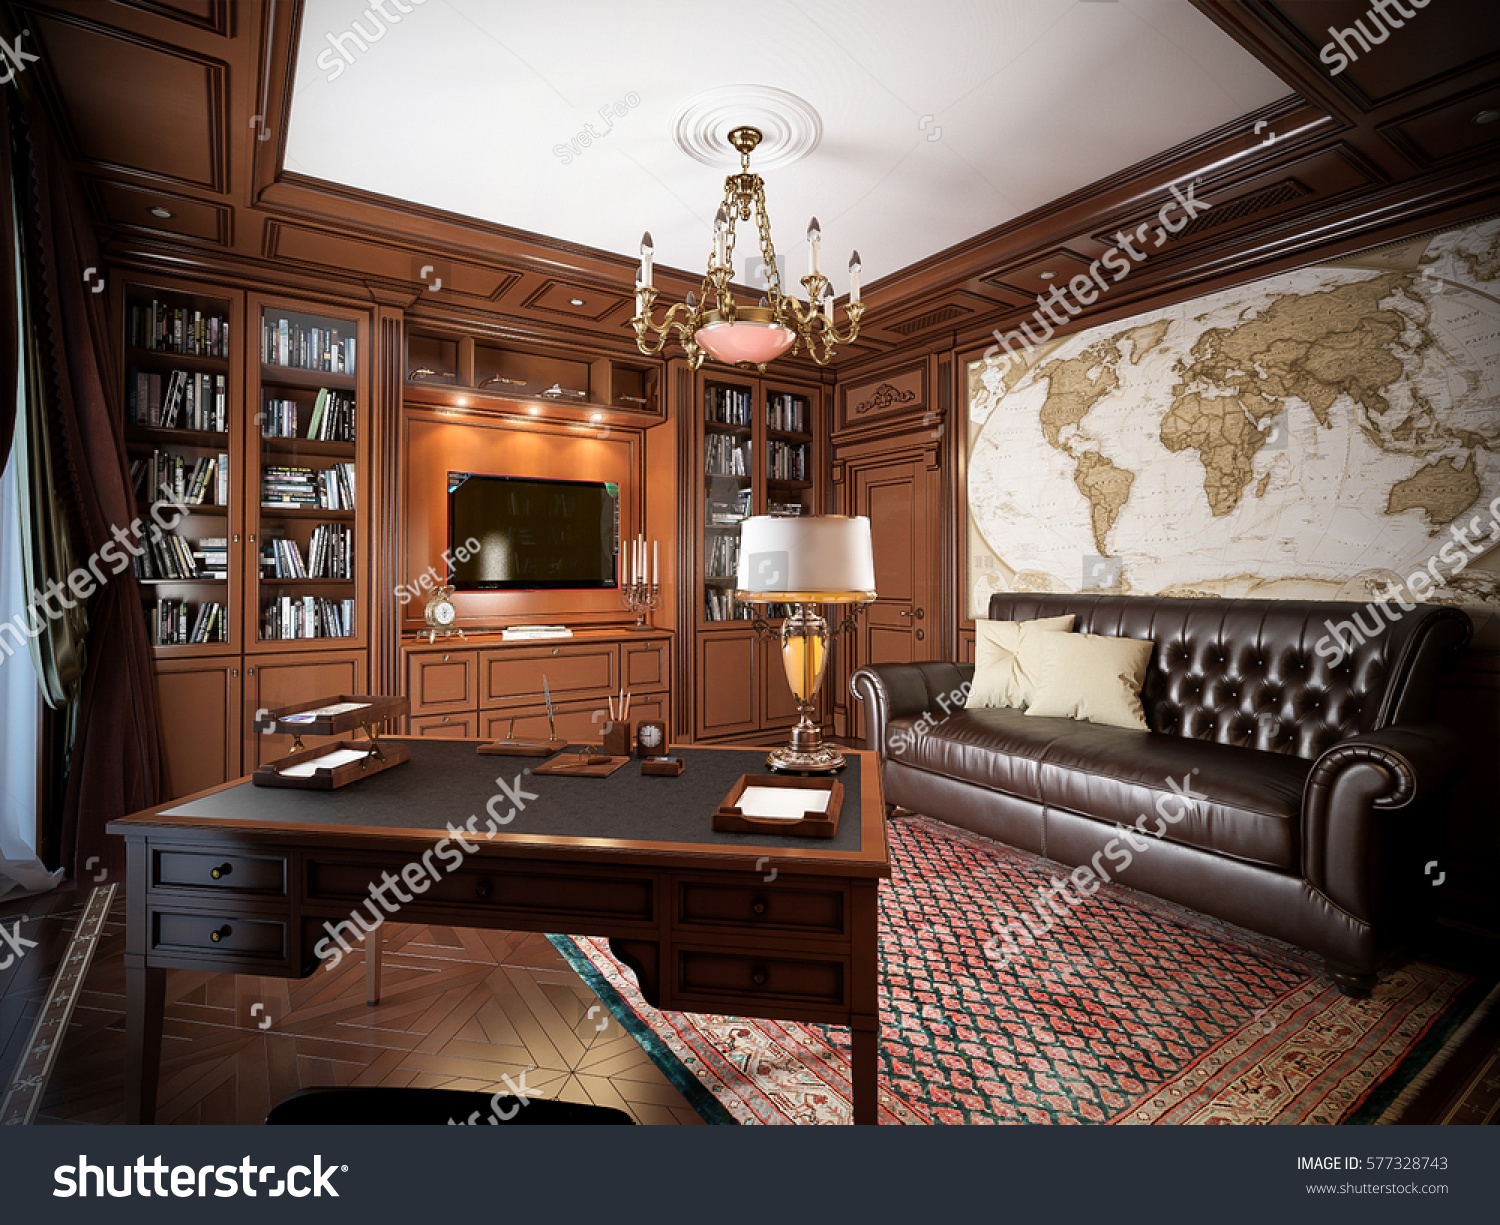 Home Office Interior Design In Classic Style. 3d Rendering.